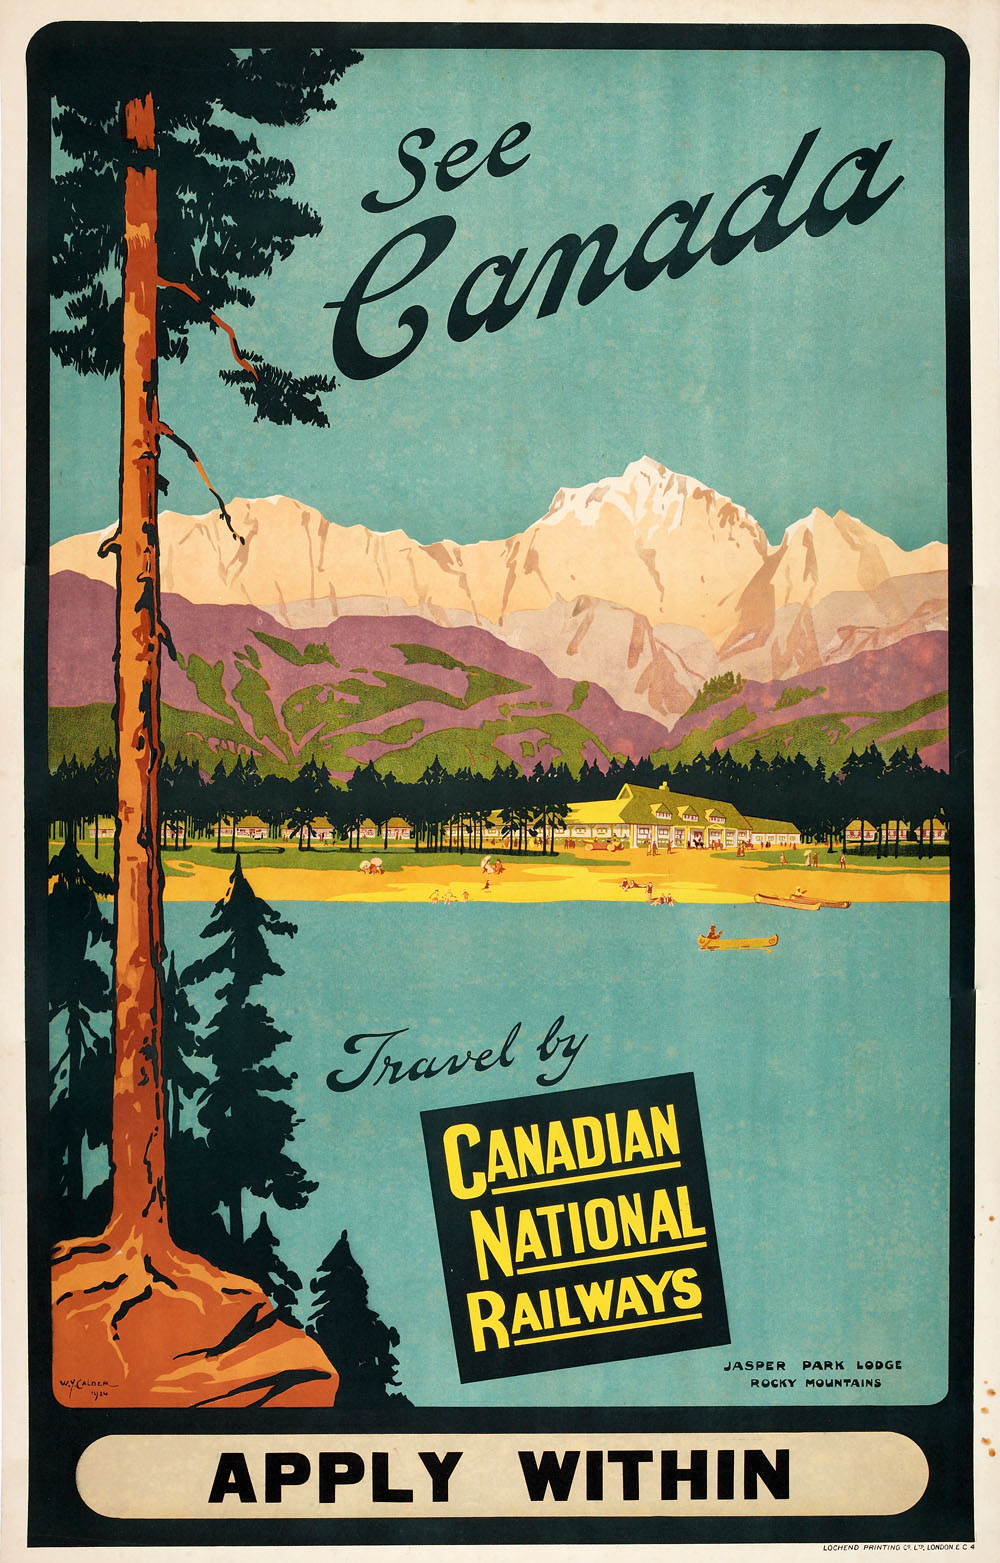 Advertising poster for Canadian National Railways, London, 1924.